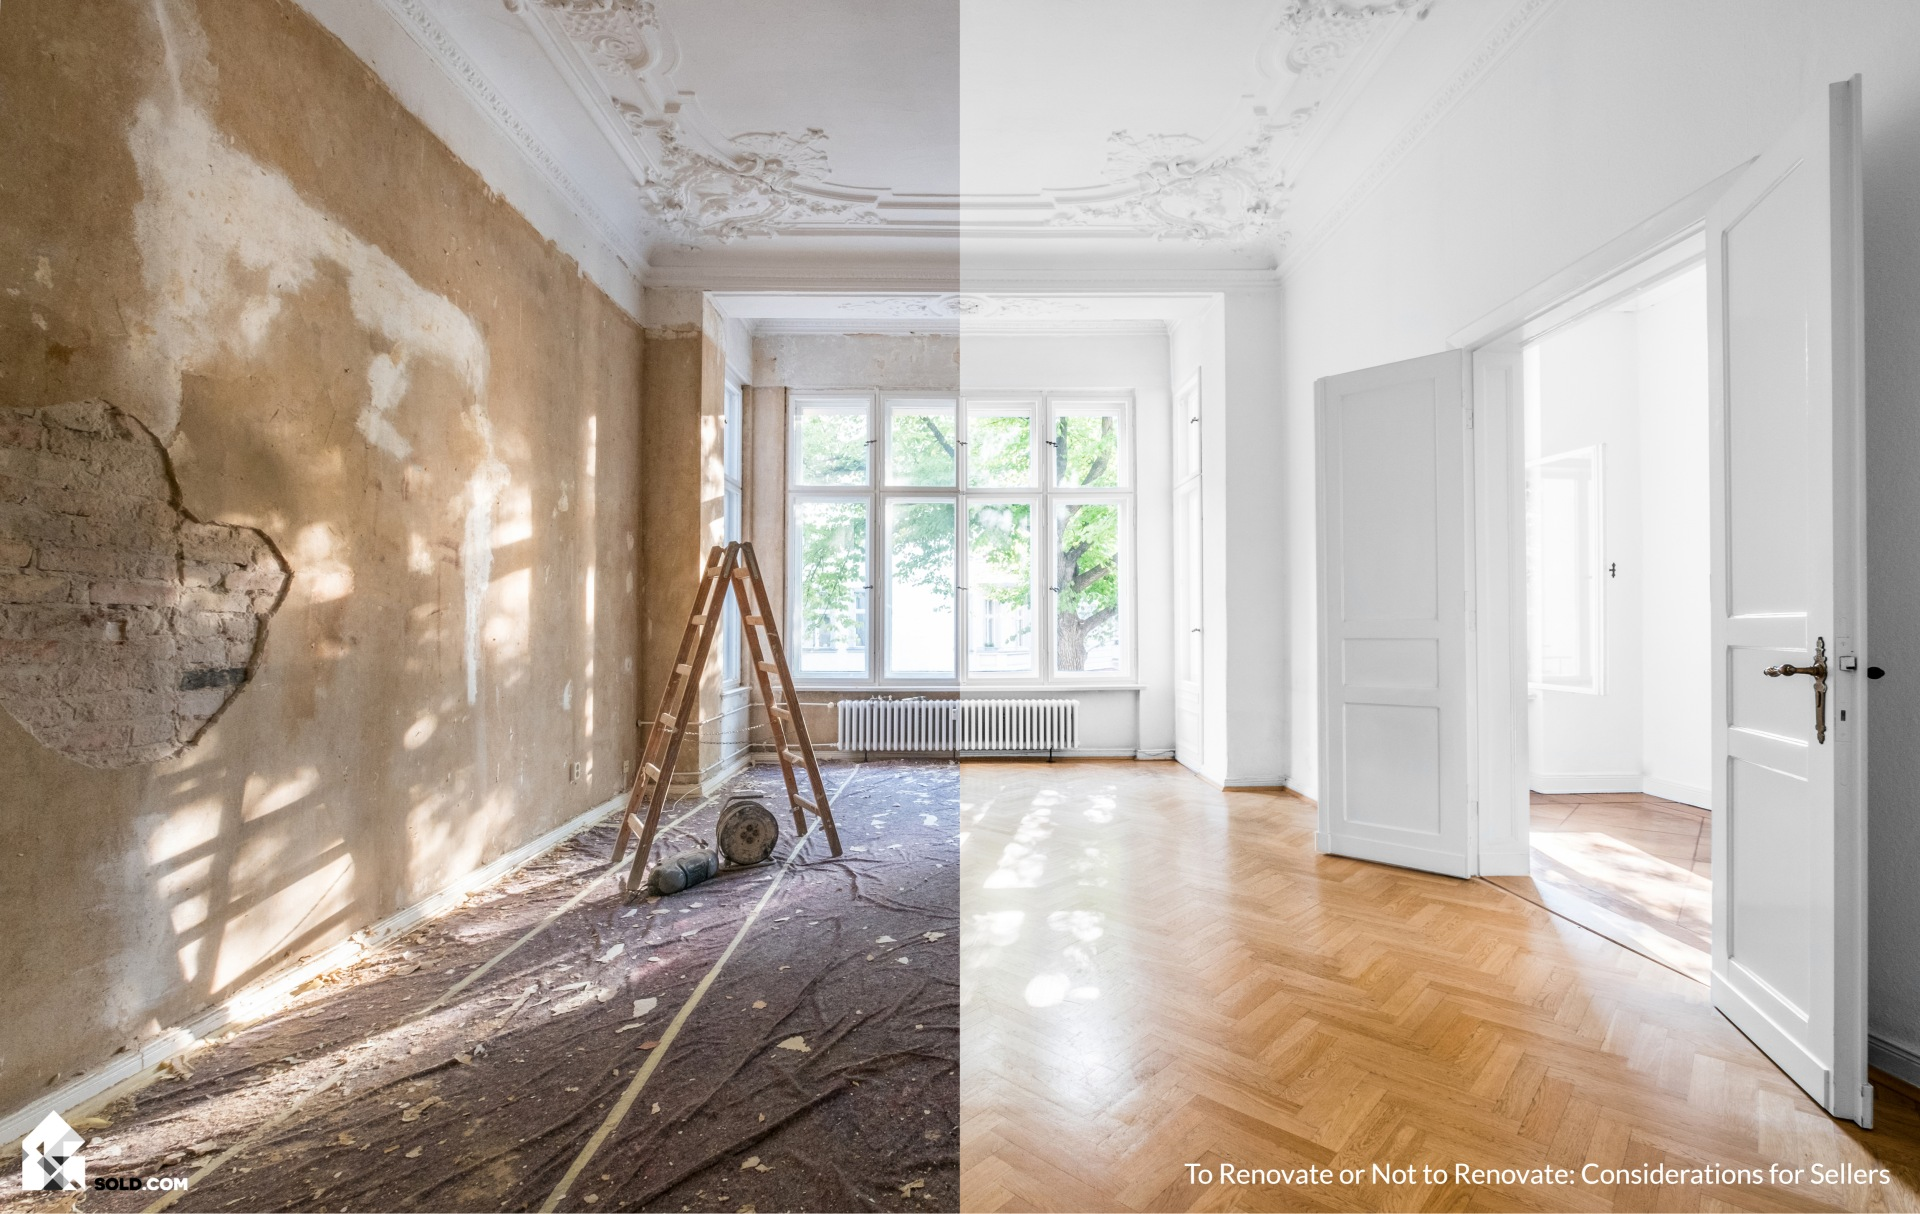 To Renovate or Not to Renovate: Considerations for Homesellers